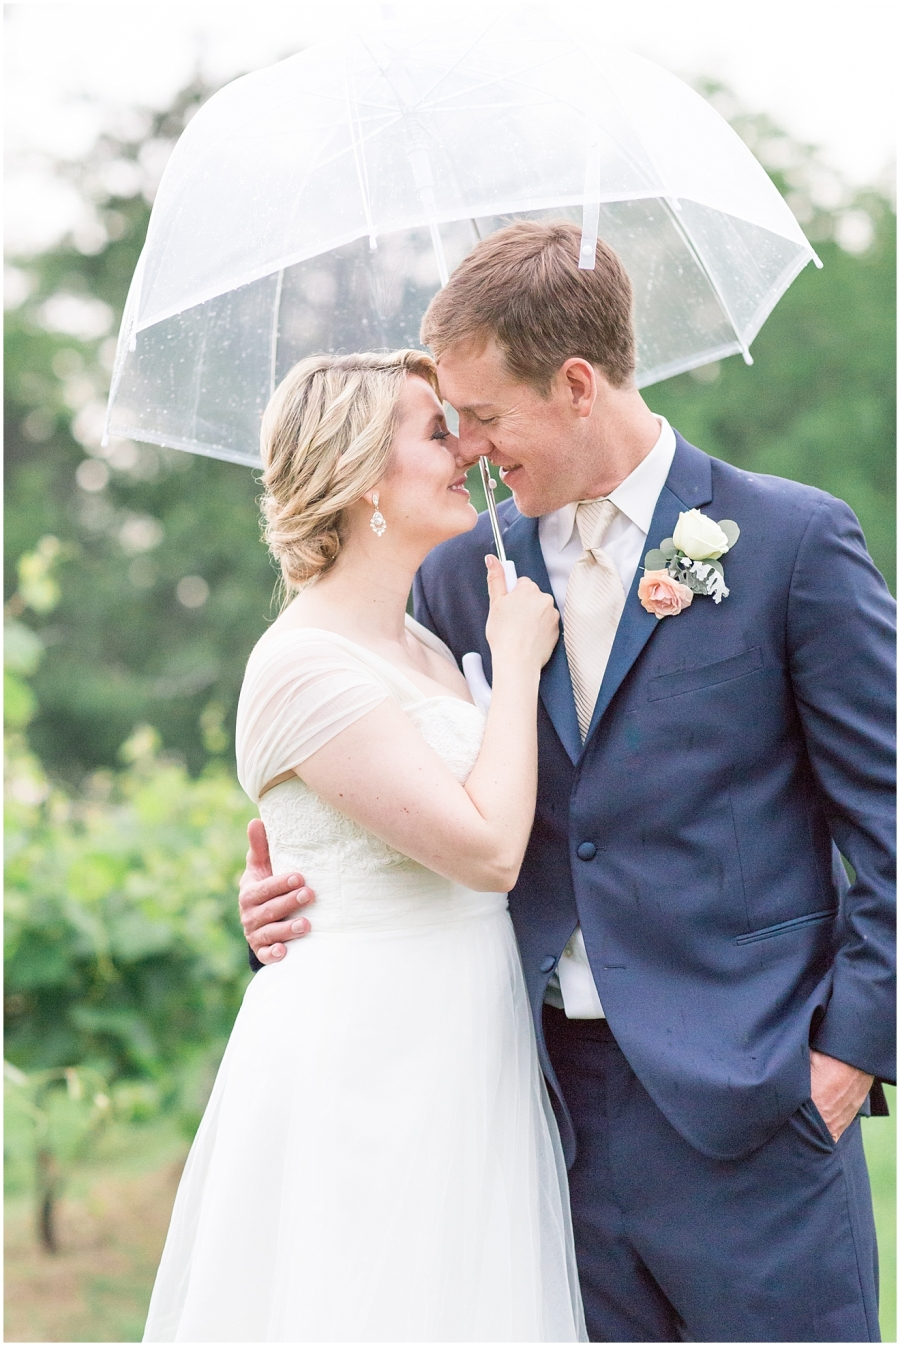 romantic-rainy-wedding-portraits